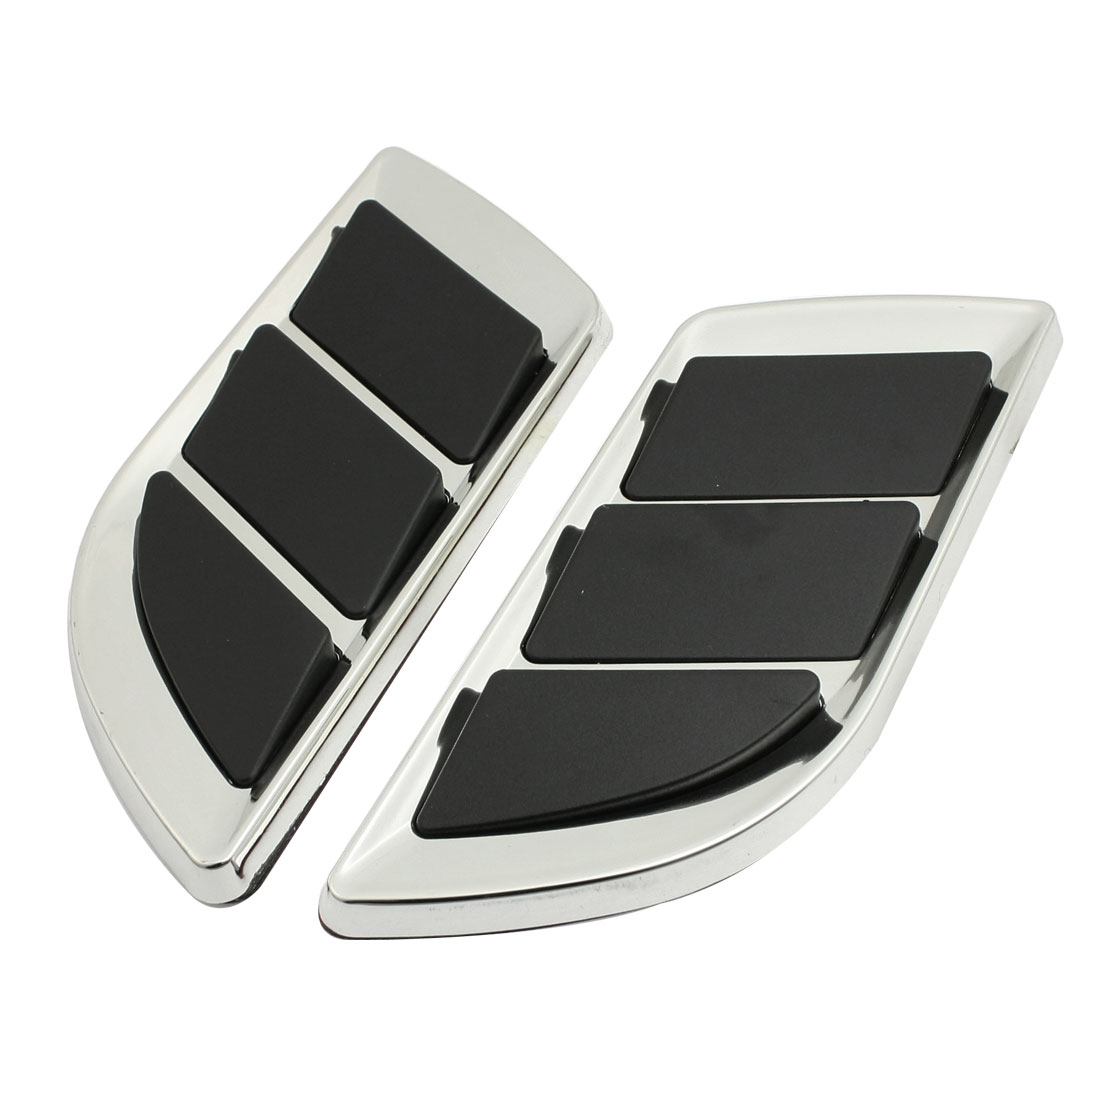 2 Pcs Car Silver Tone Black Plastic Protective Air Flow Sticker Decor